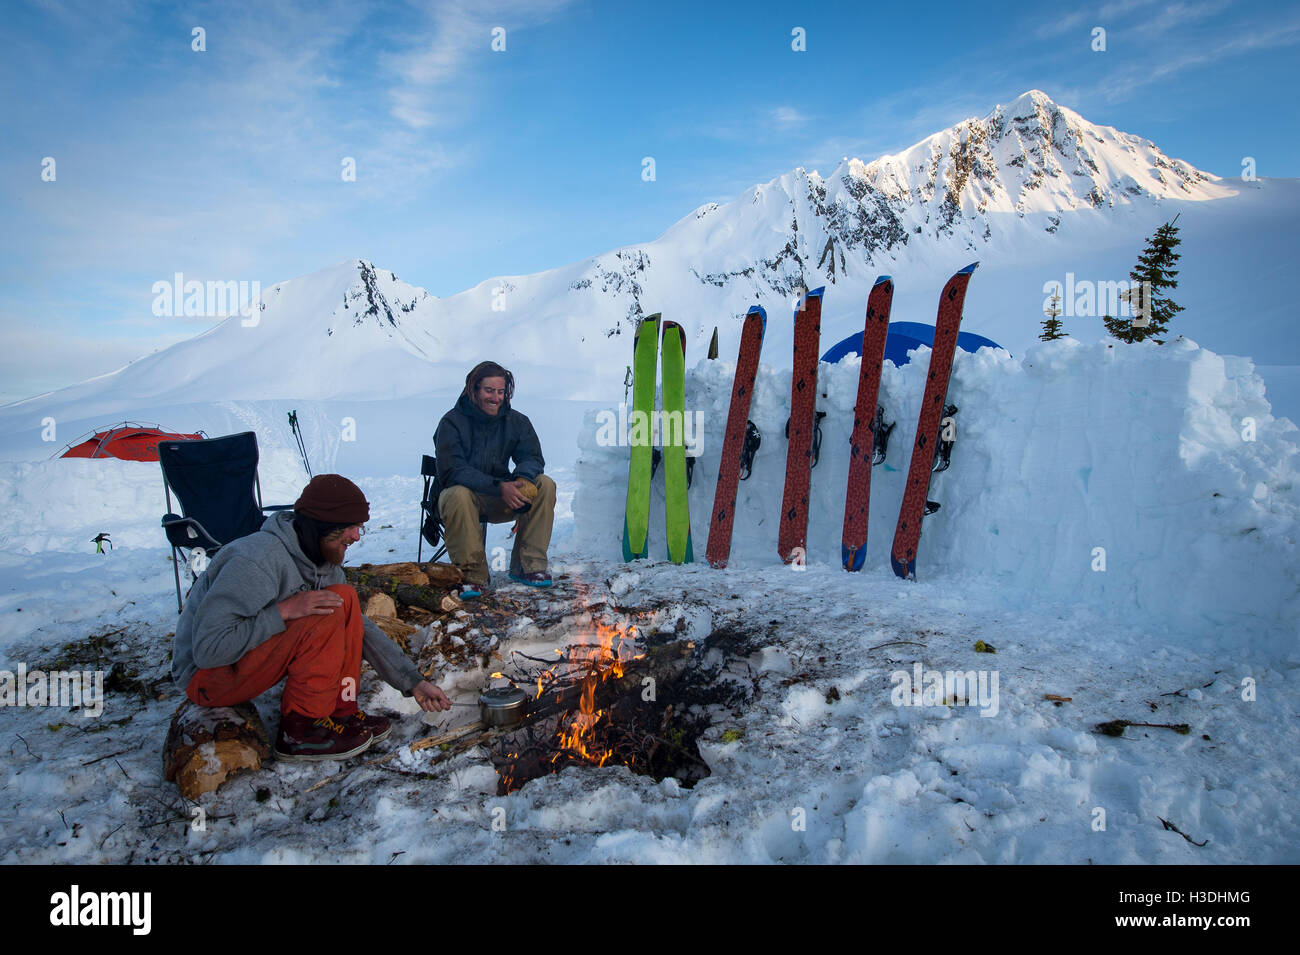 Snowboarders hanging out around a fire during sunset at base camp - Stock Image